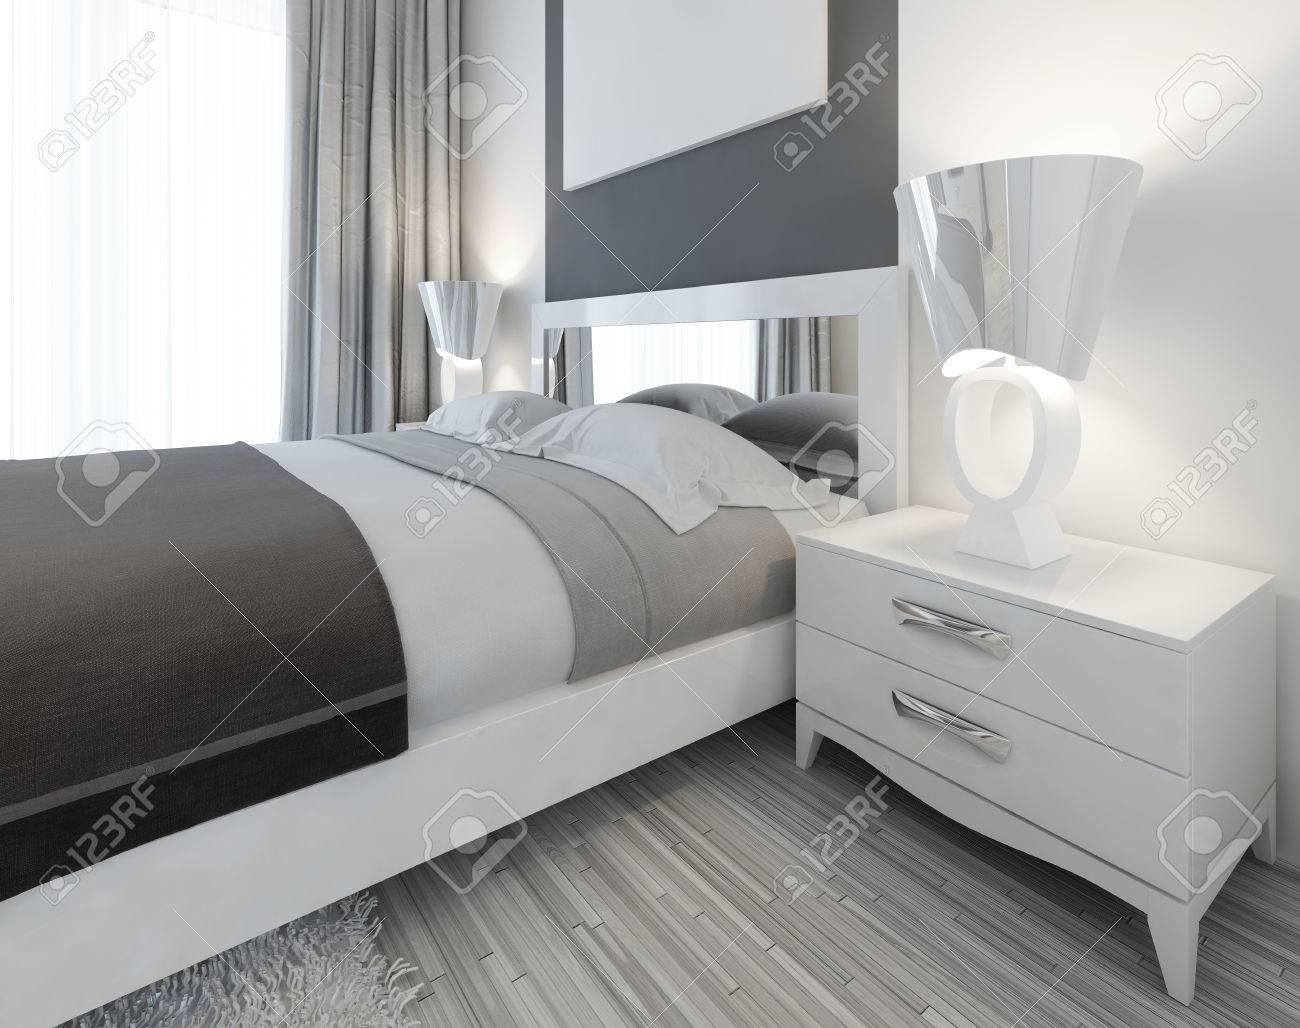 modern white nightstand with a lamp by the bed in a bedroom contemporary